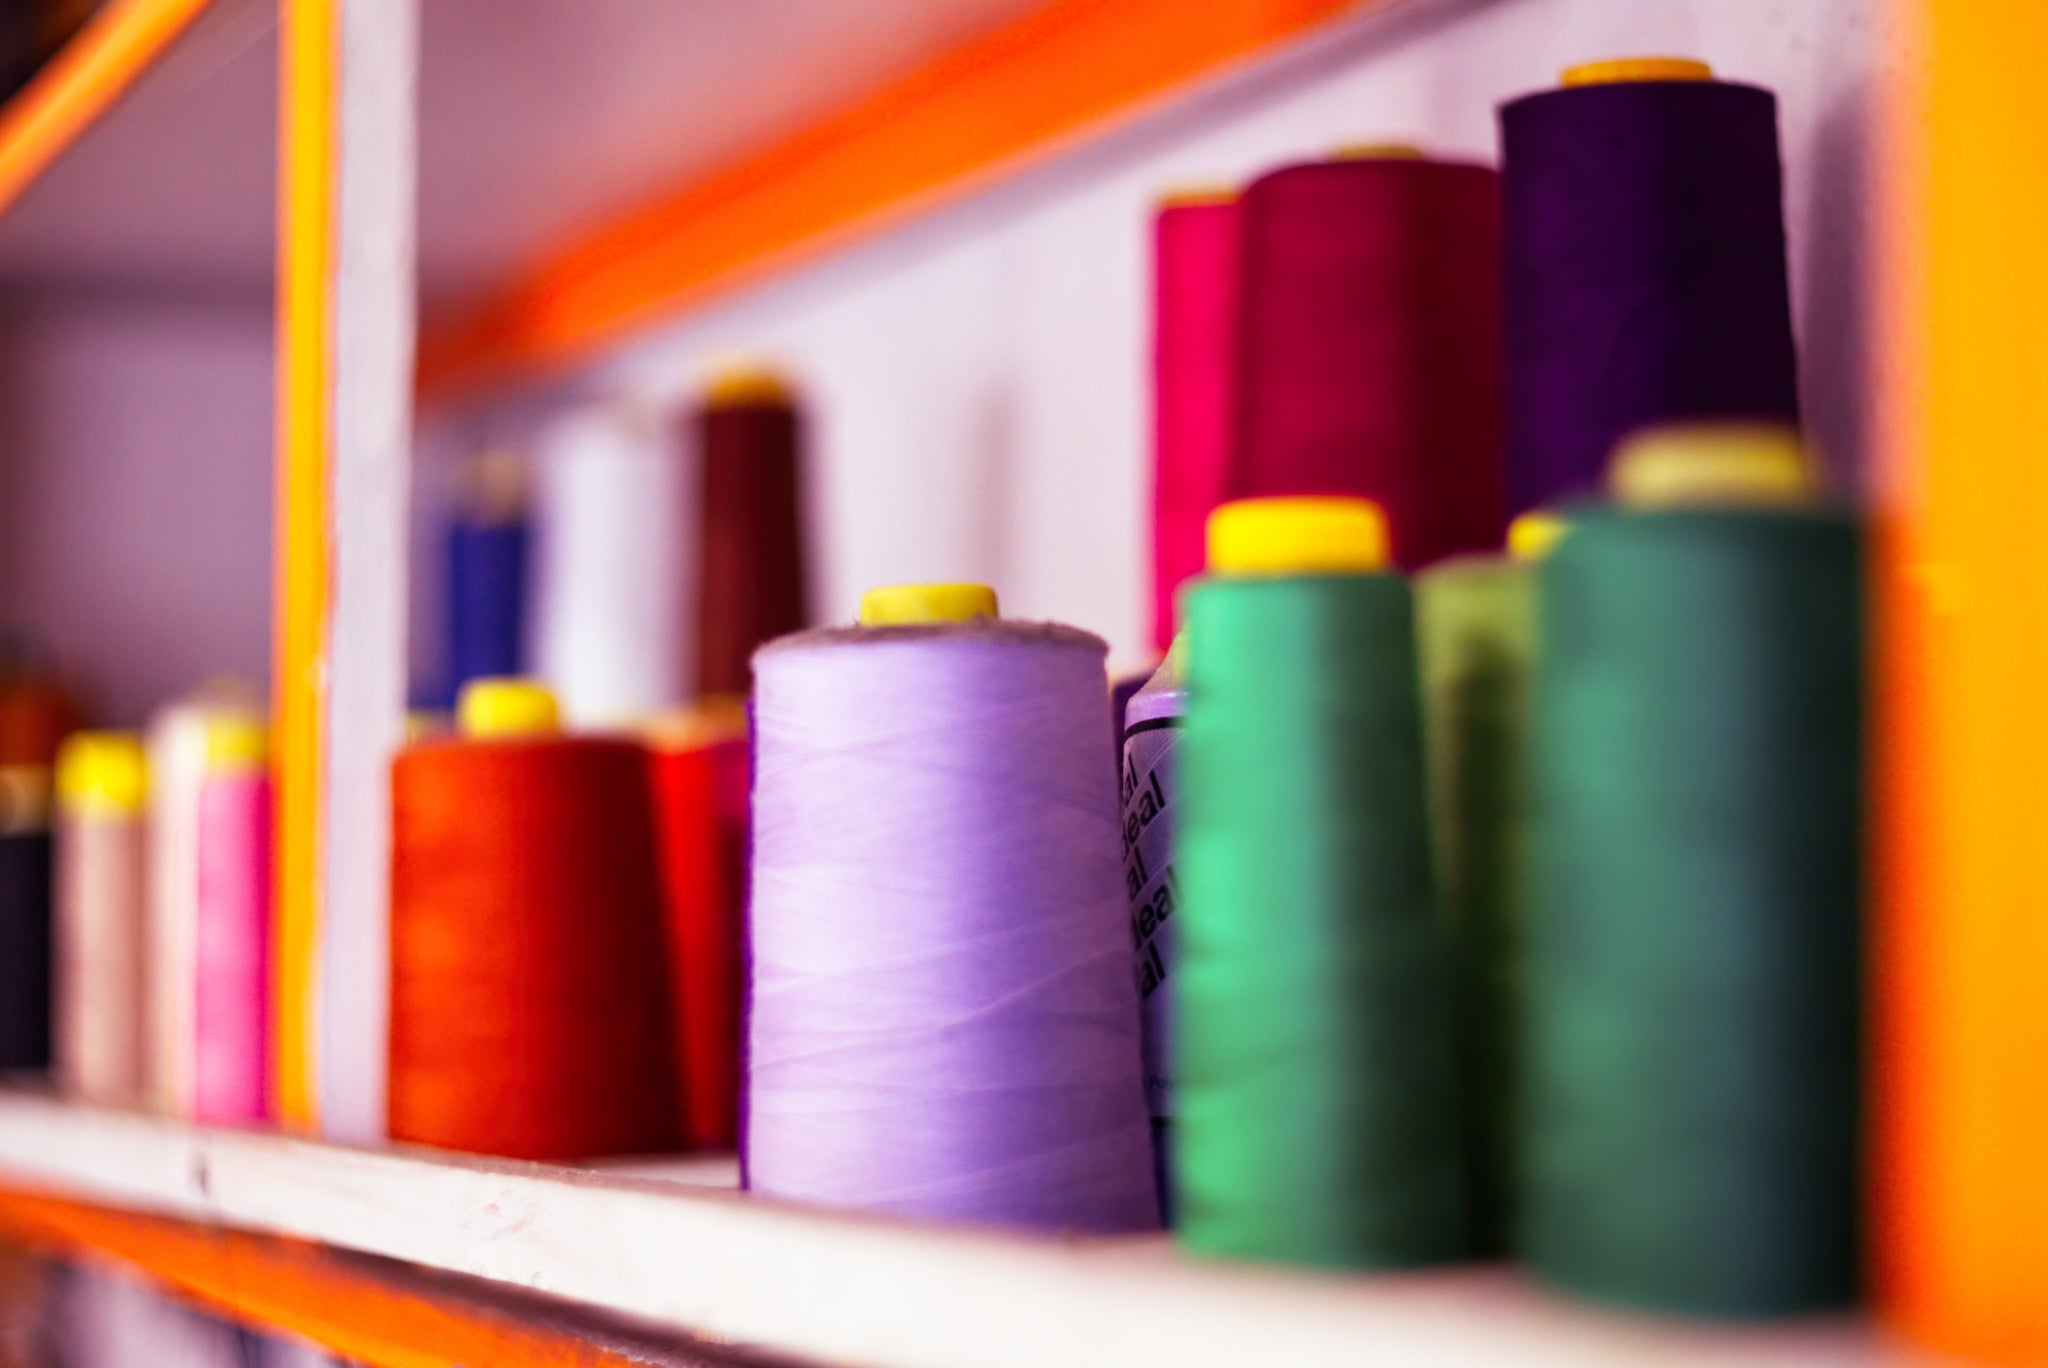 Photo of colourful thread on spools on a shelf